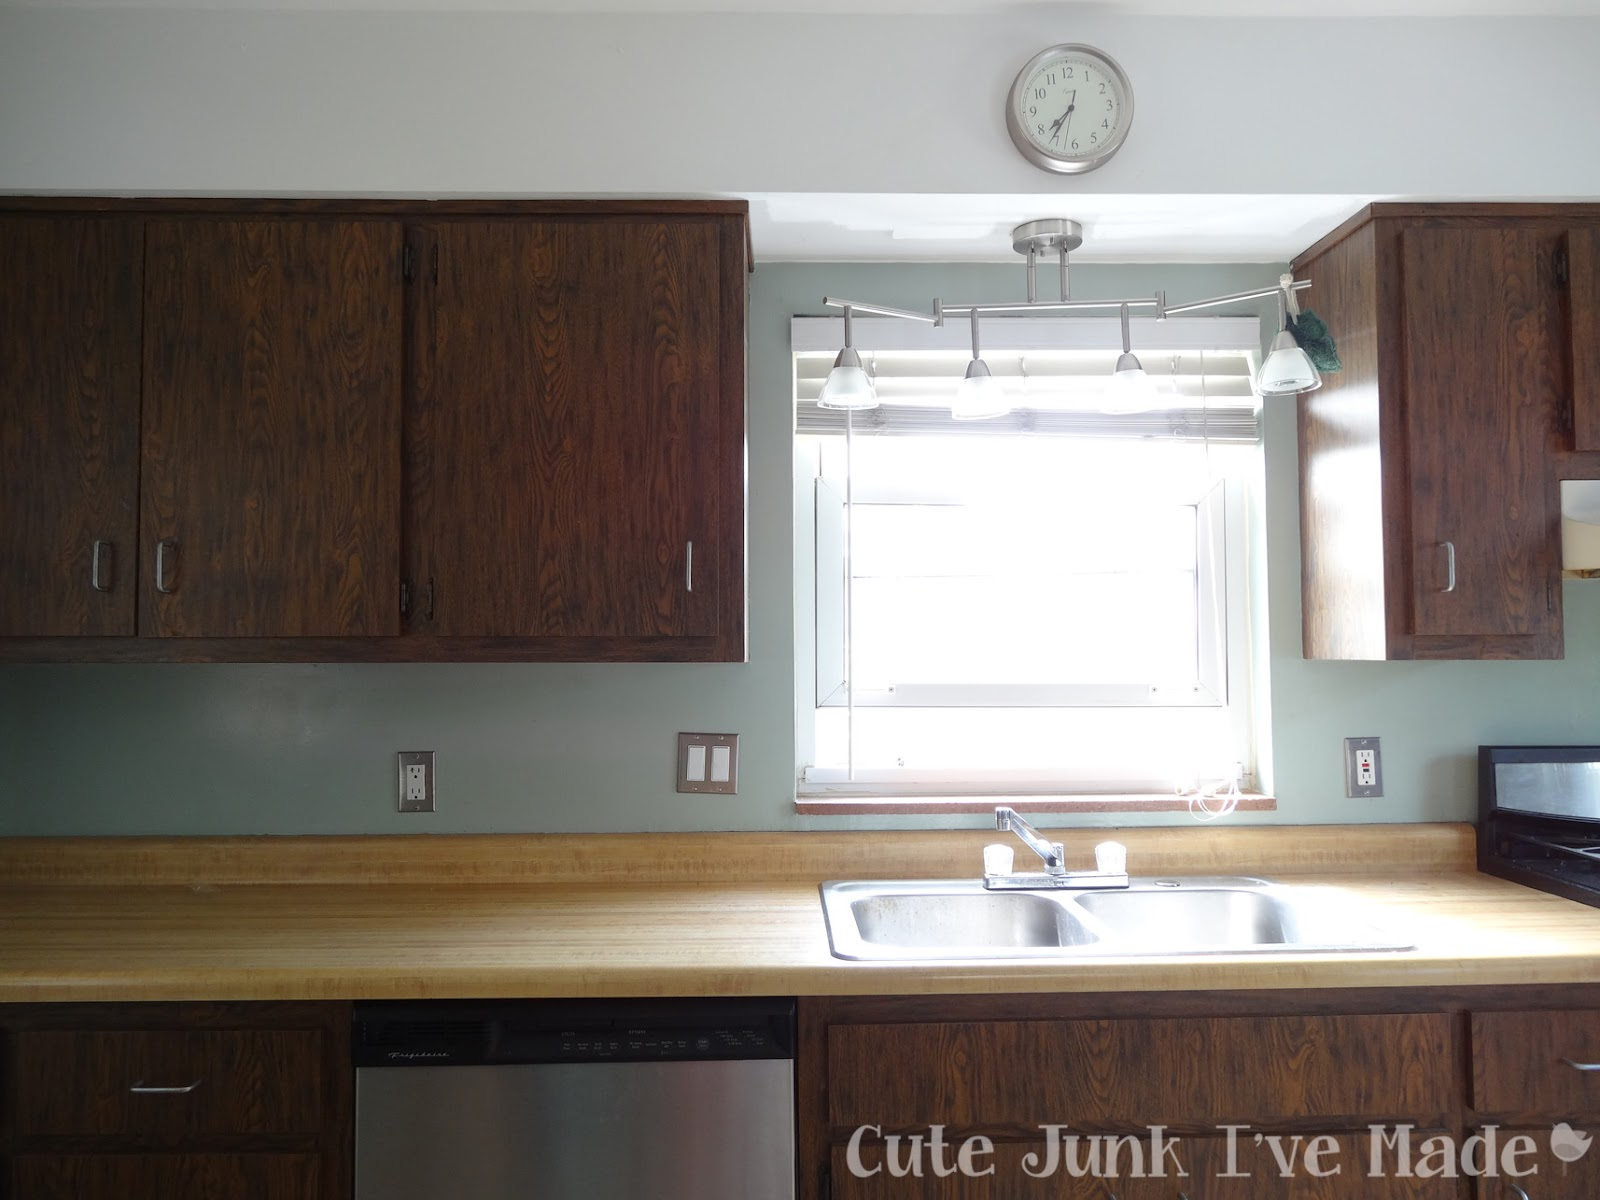 Cute Junk I've Made: How to Paint Laminate Cabinets - Part ...